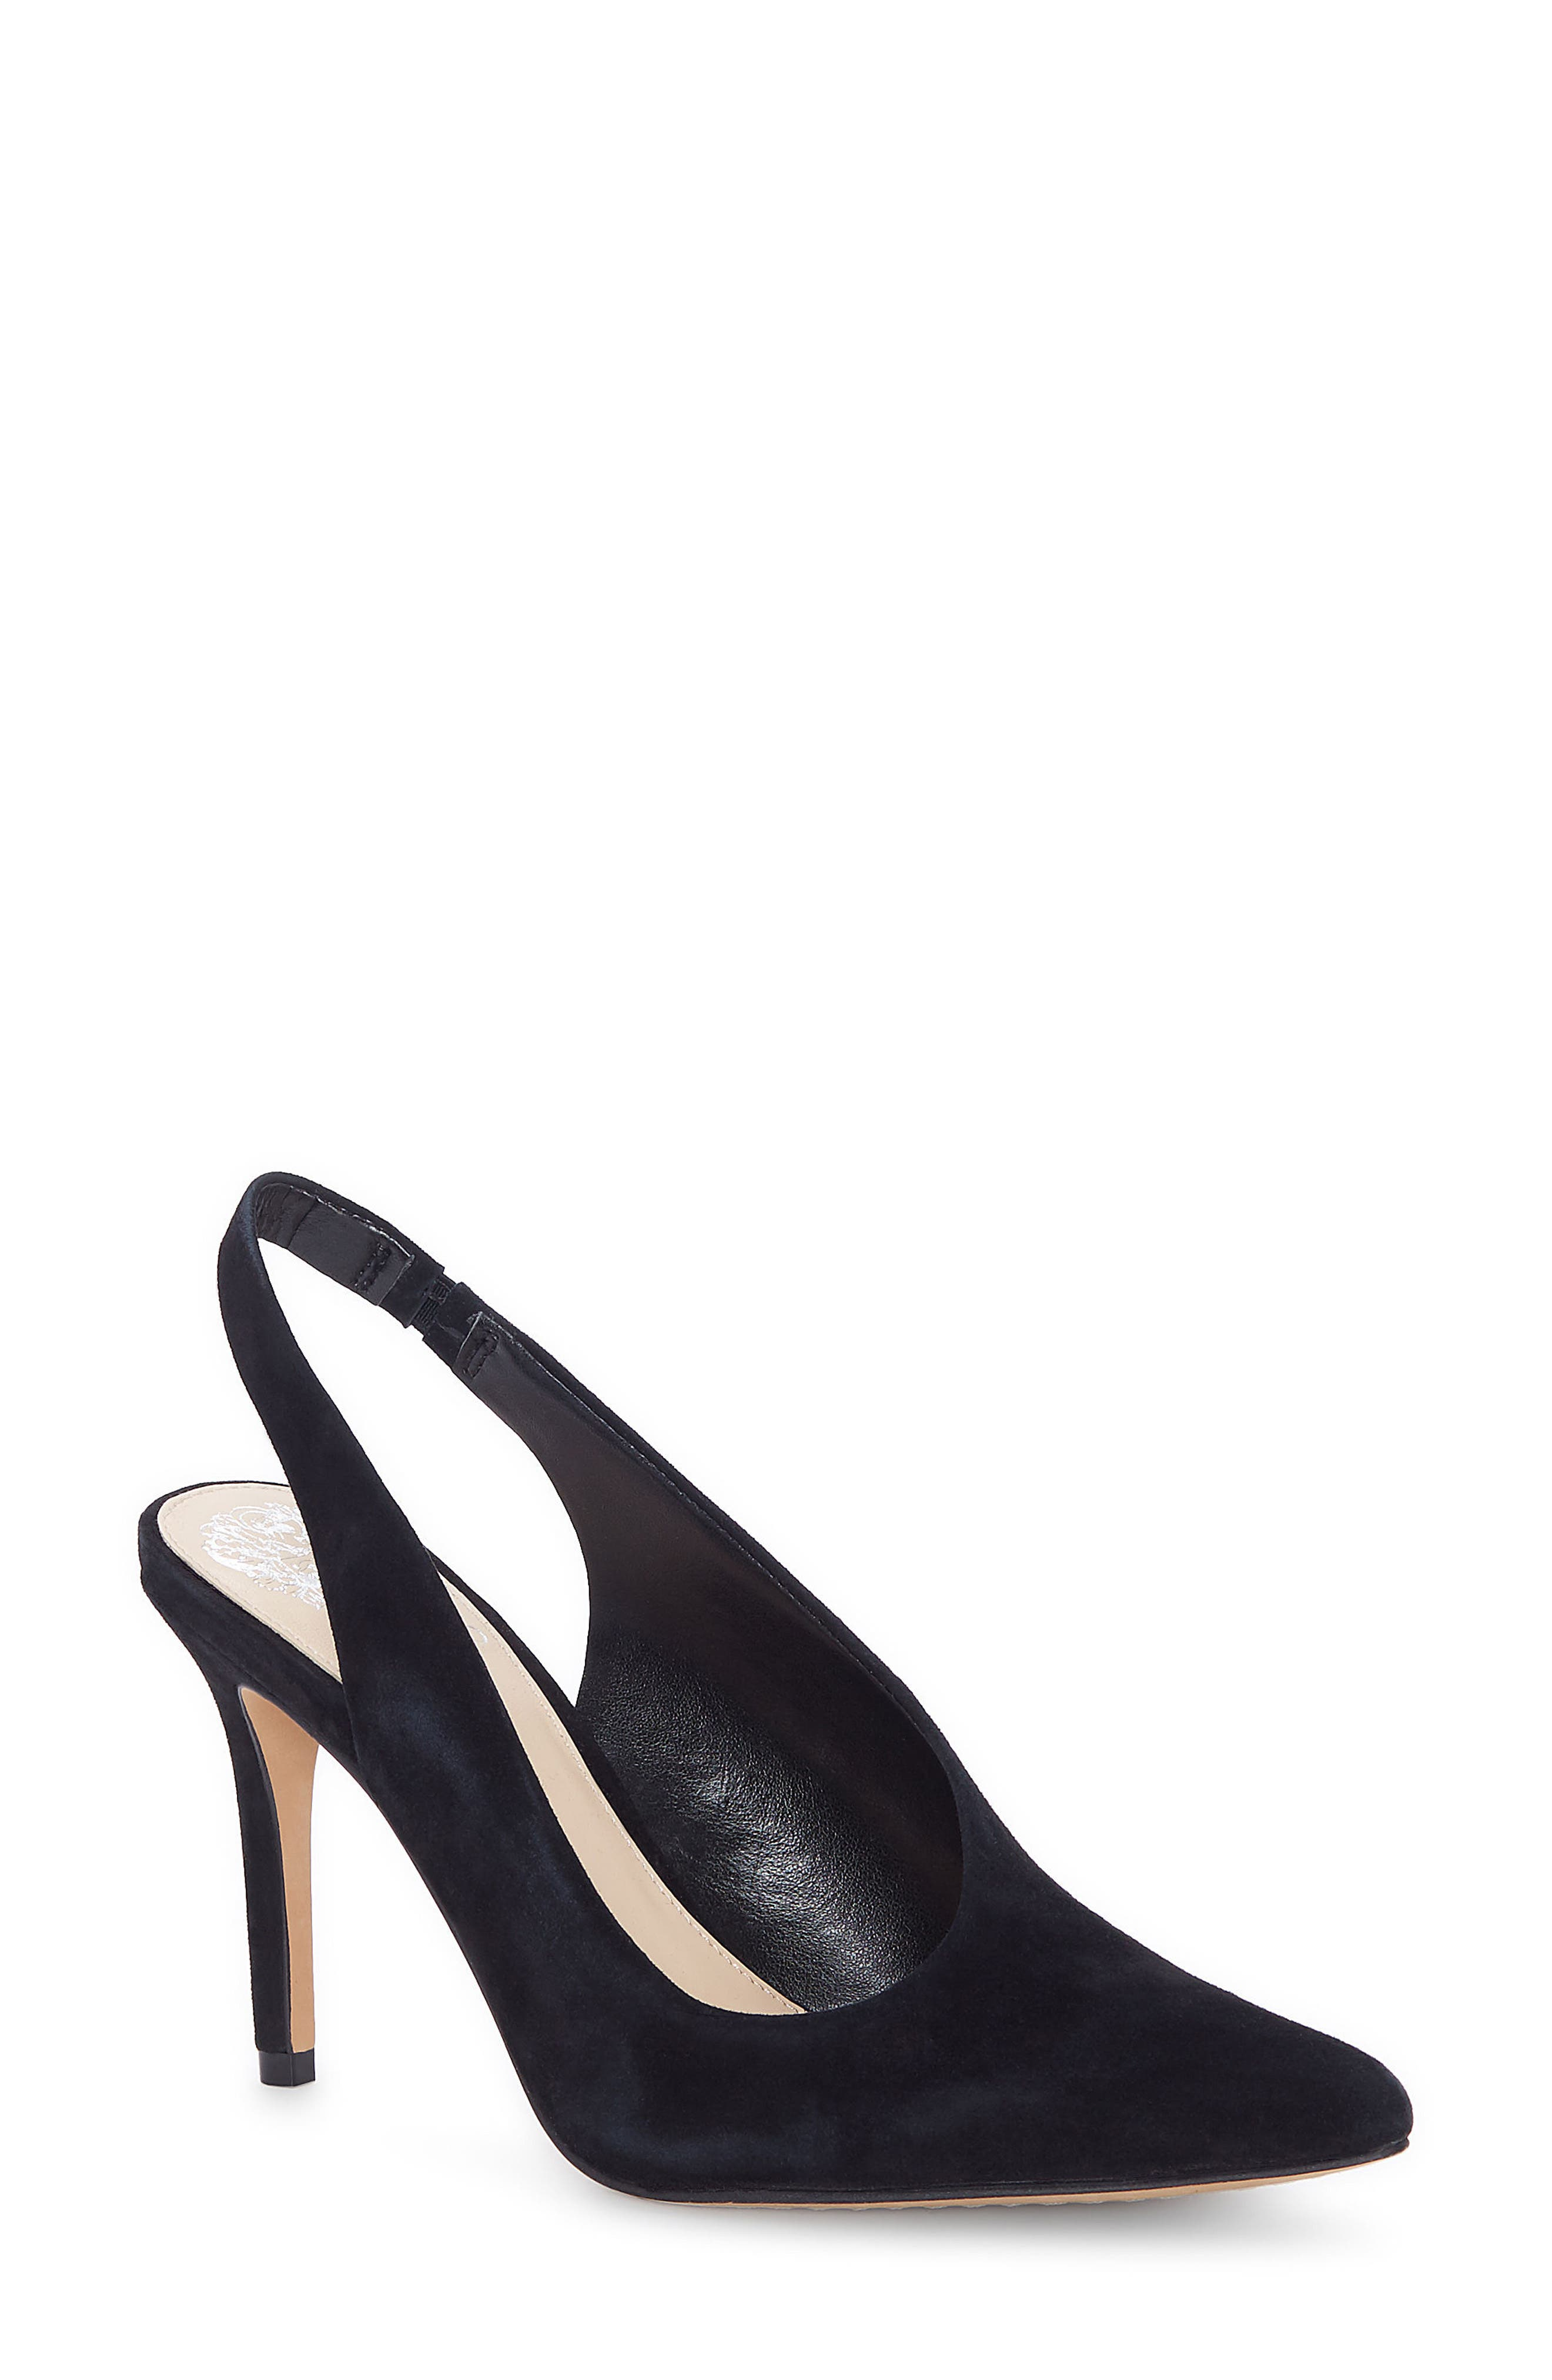 VINCE CAMUTO,                             Ampereta Pump,                             Main thumbnail 1, color,                             001